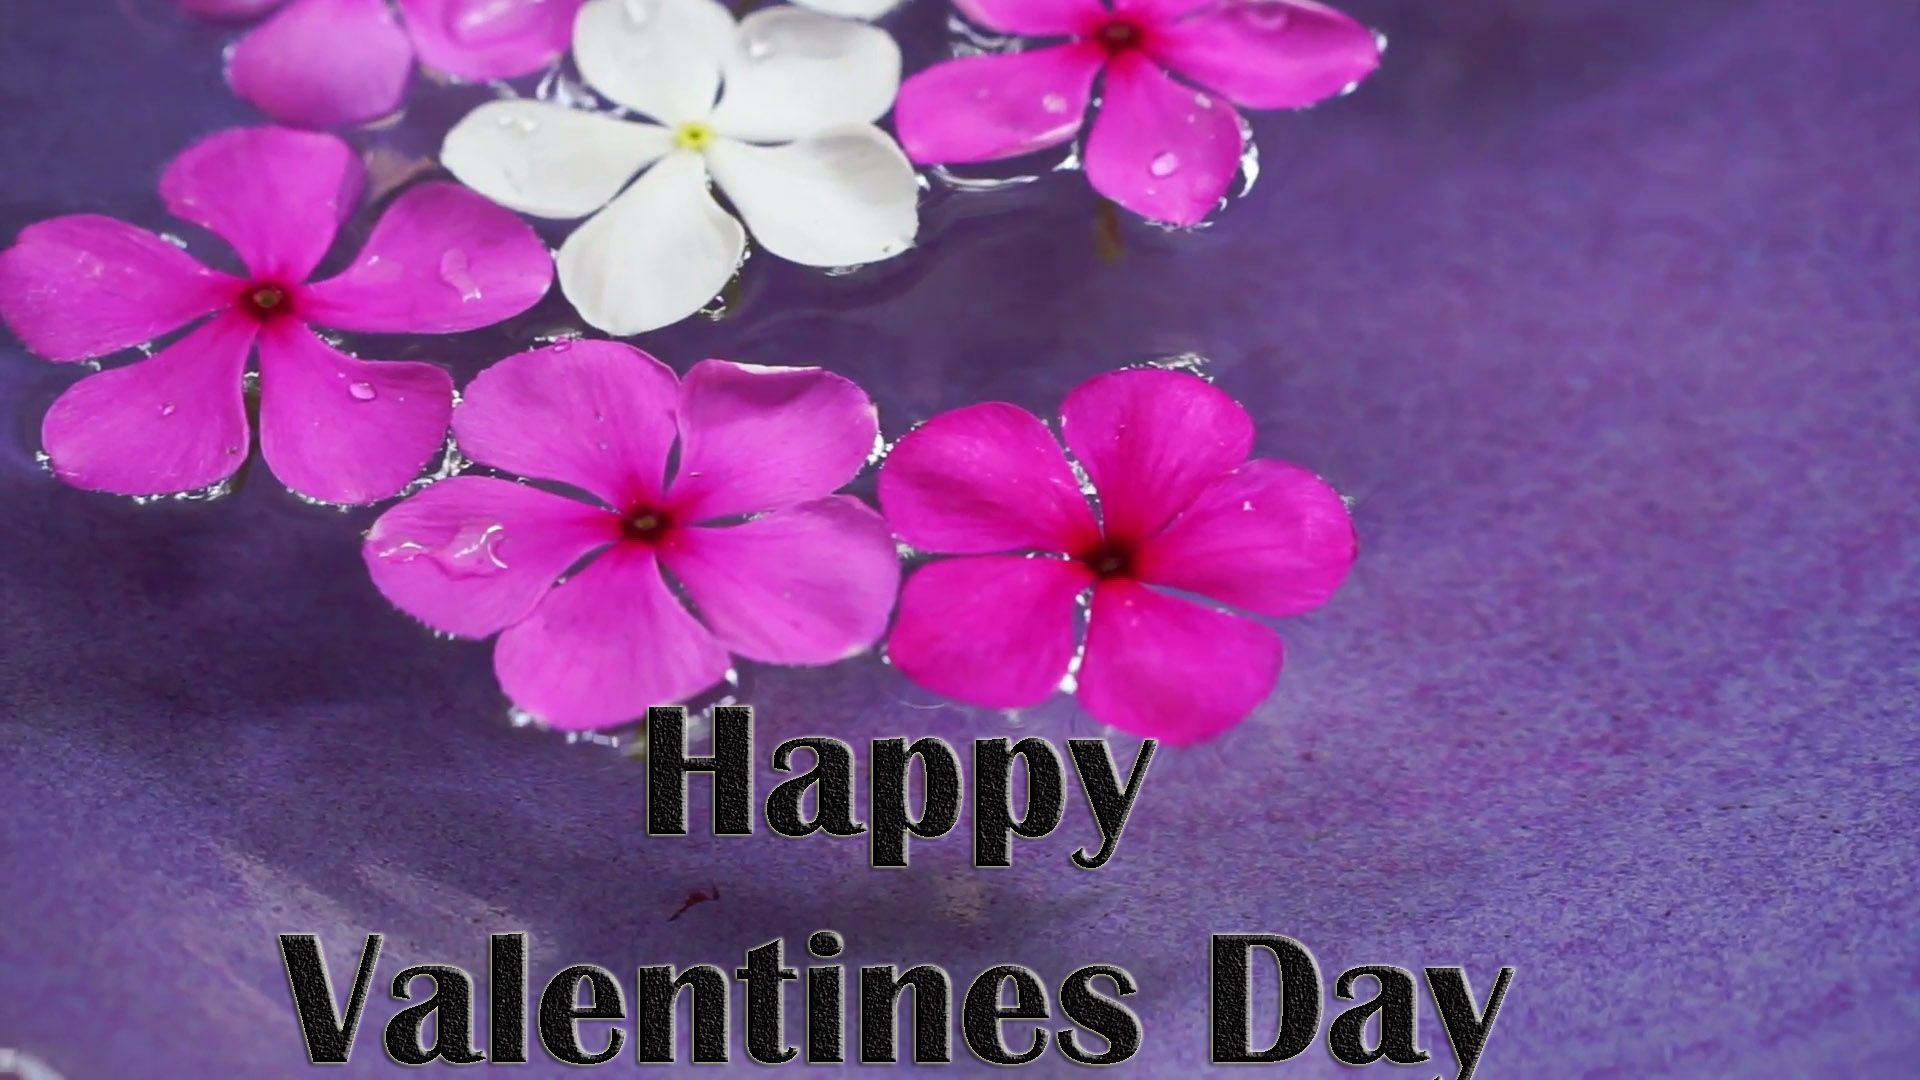 valentines-day-card-images